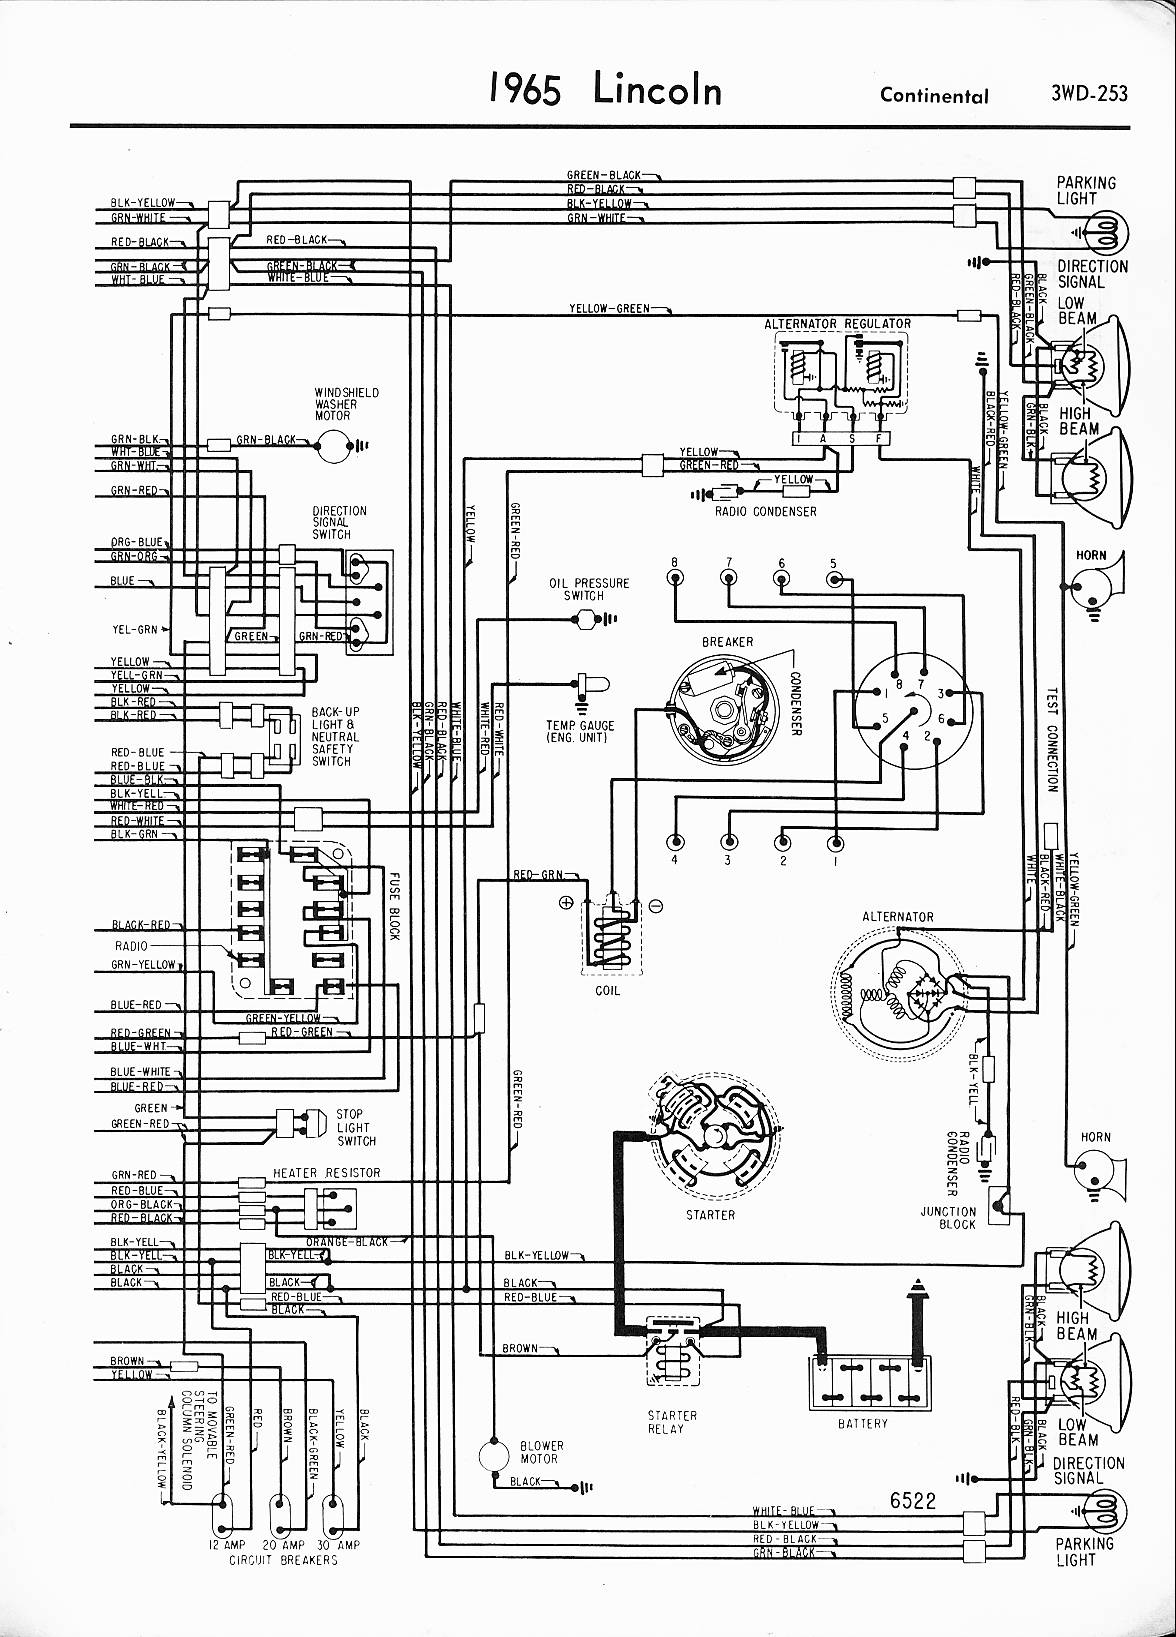 Lincoln Wiring Diagrams 1957 1965 2001 Bmw 740i Engine Diagram Right Half